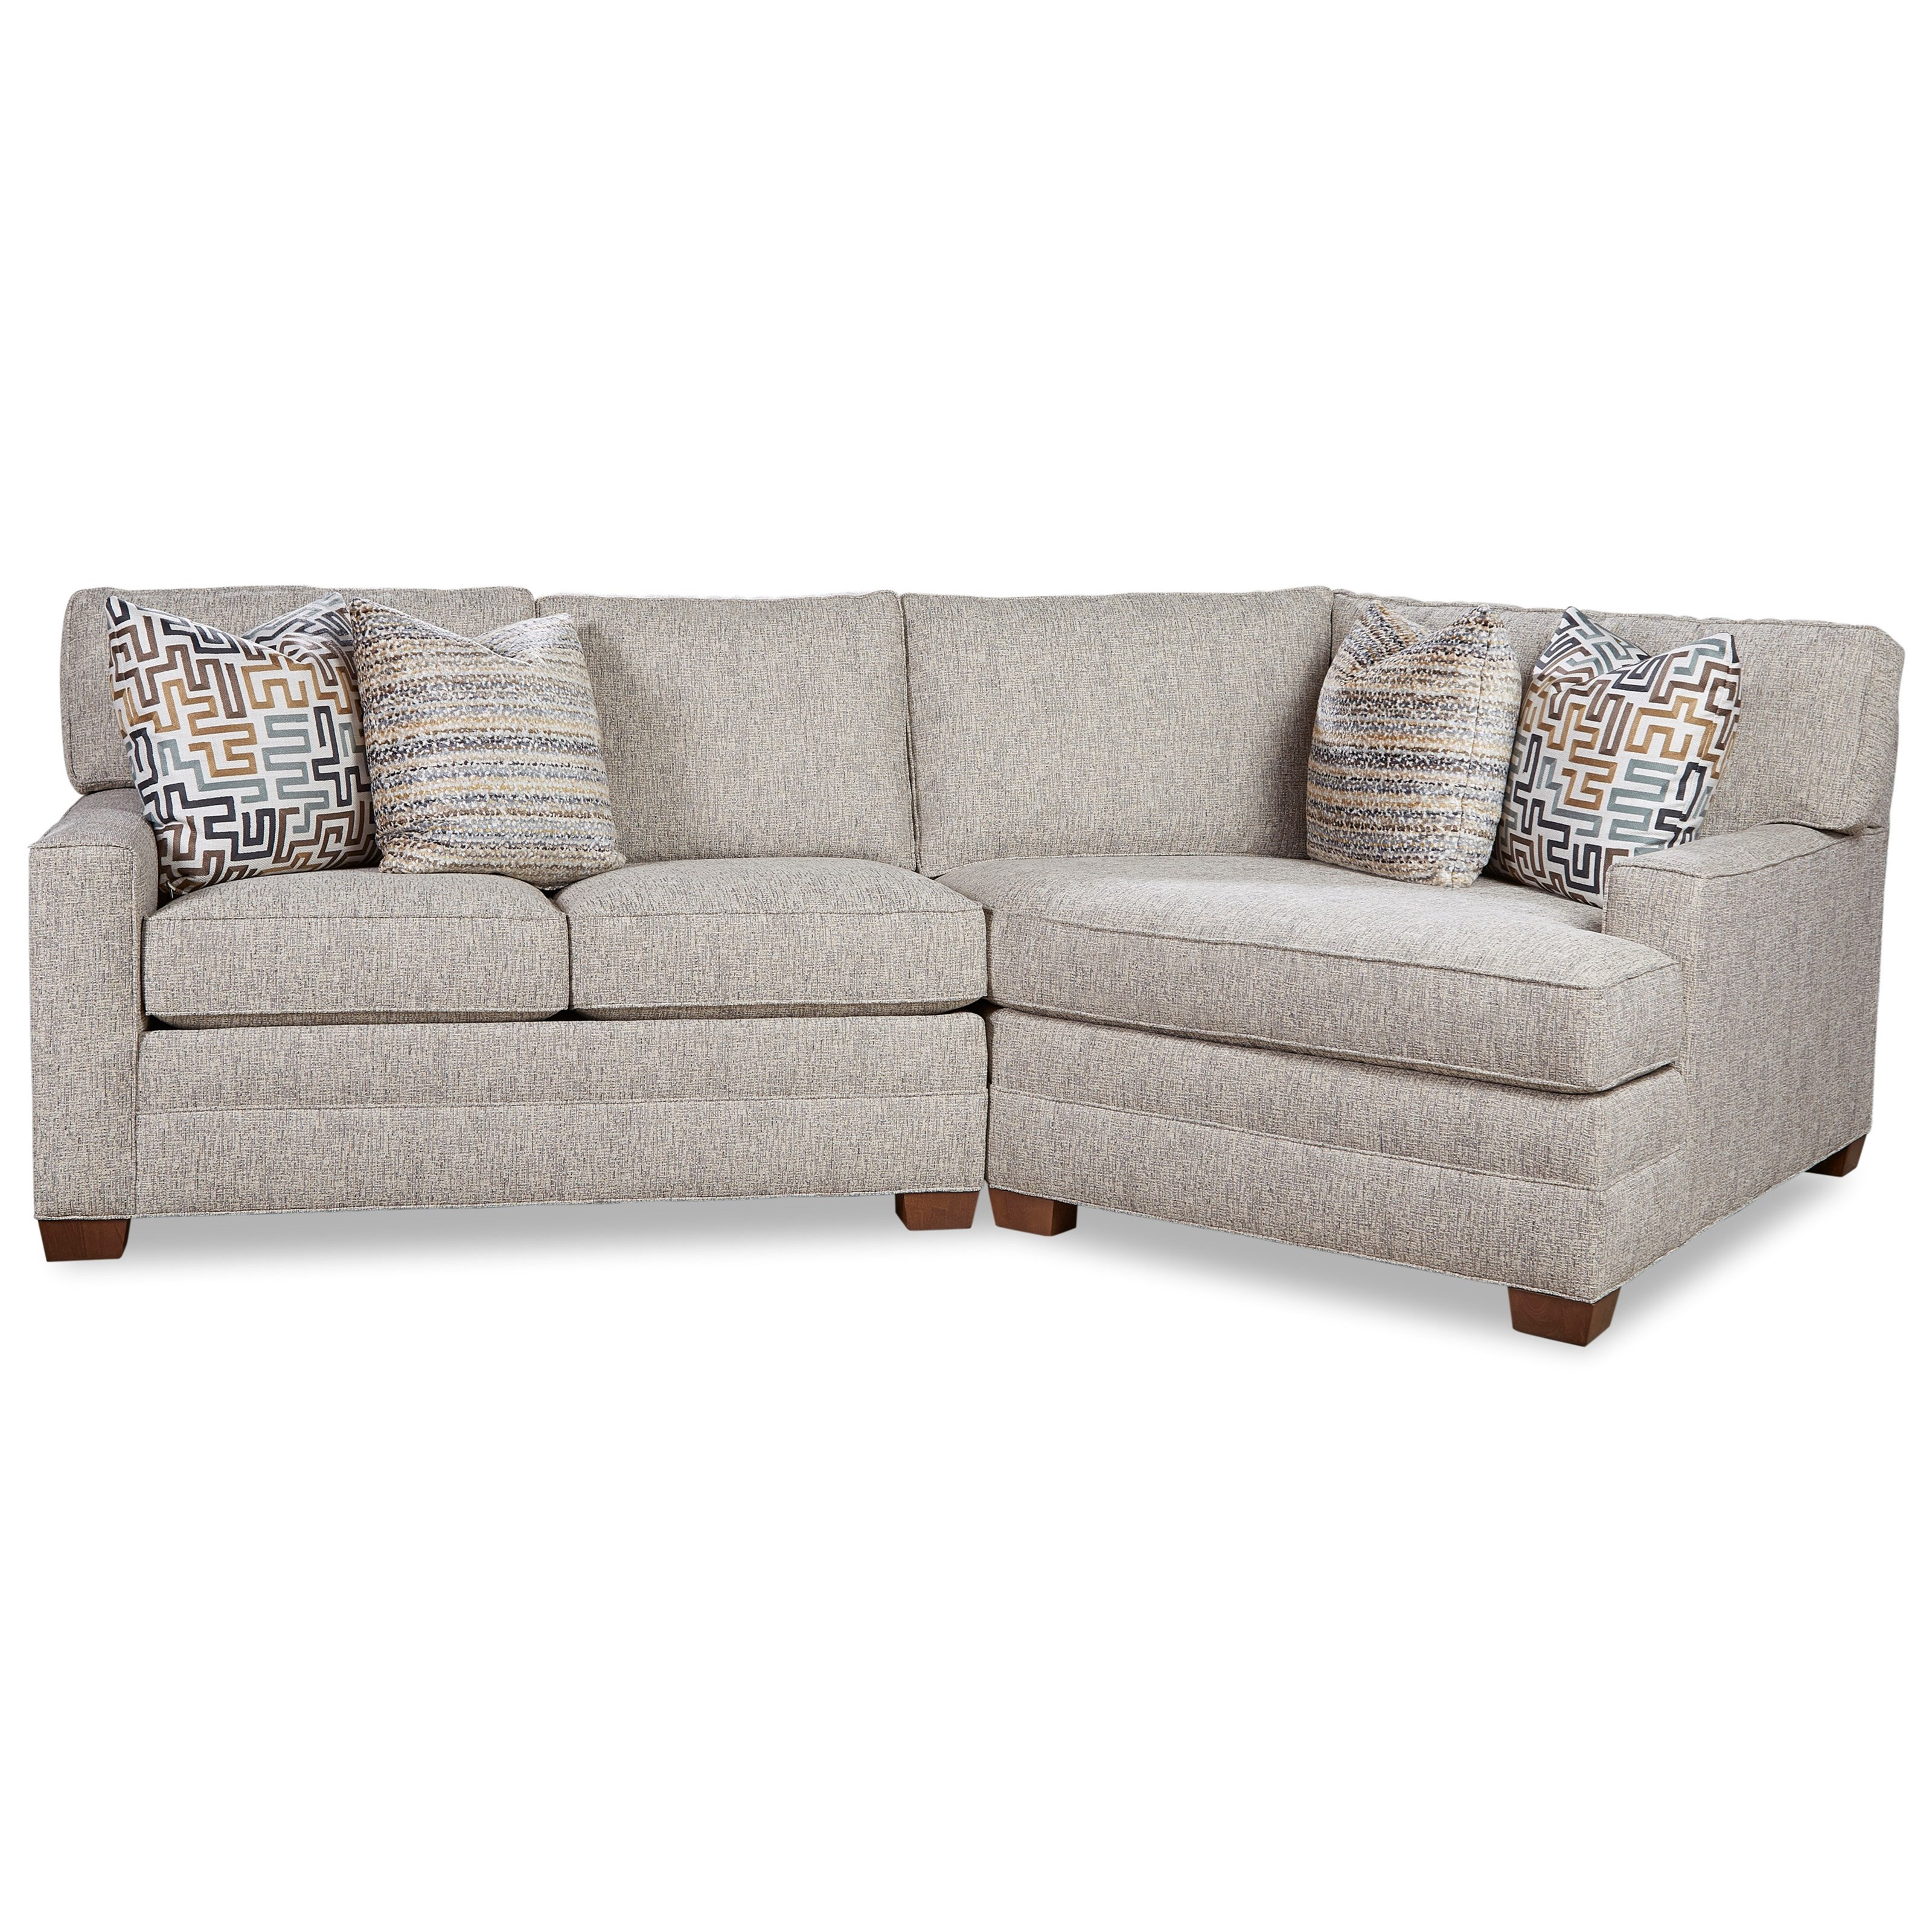 2062 Customizable Sectional by Huntington House at Belfort Furniture